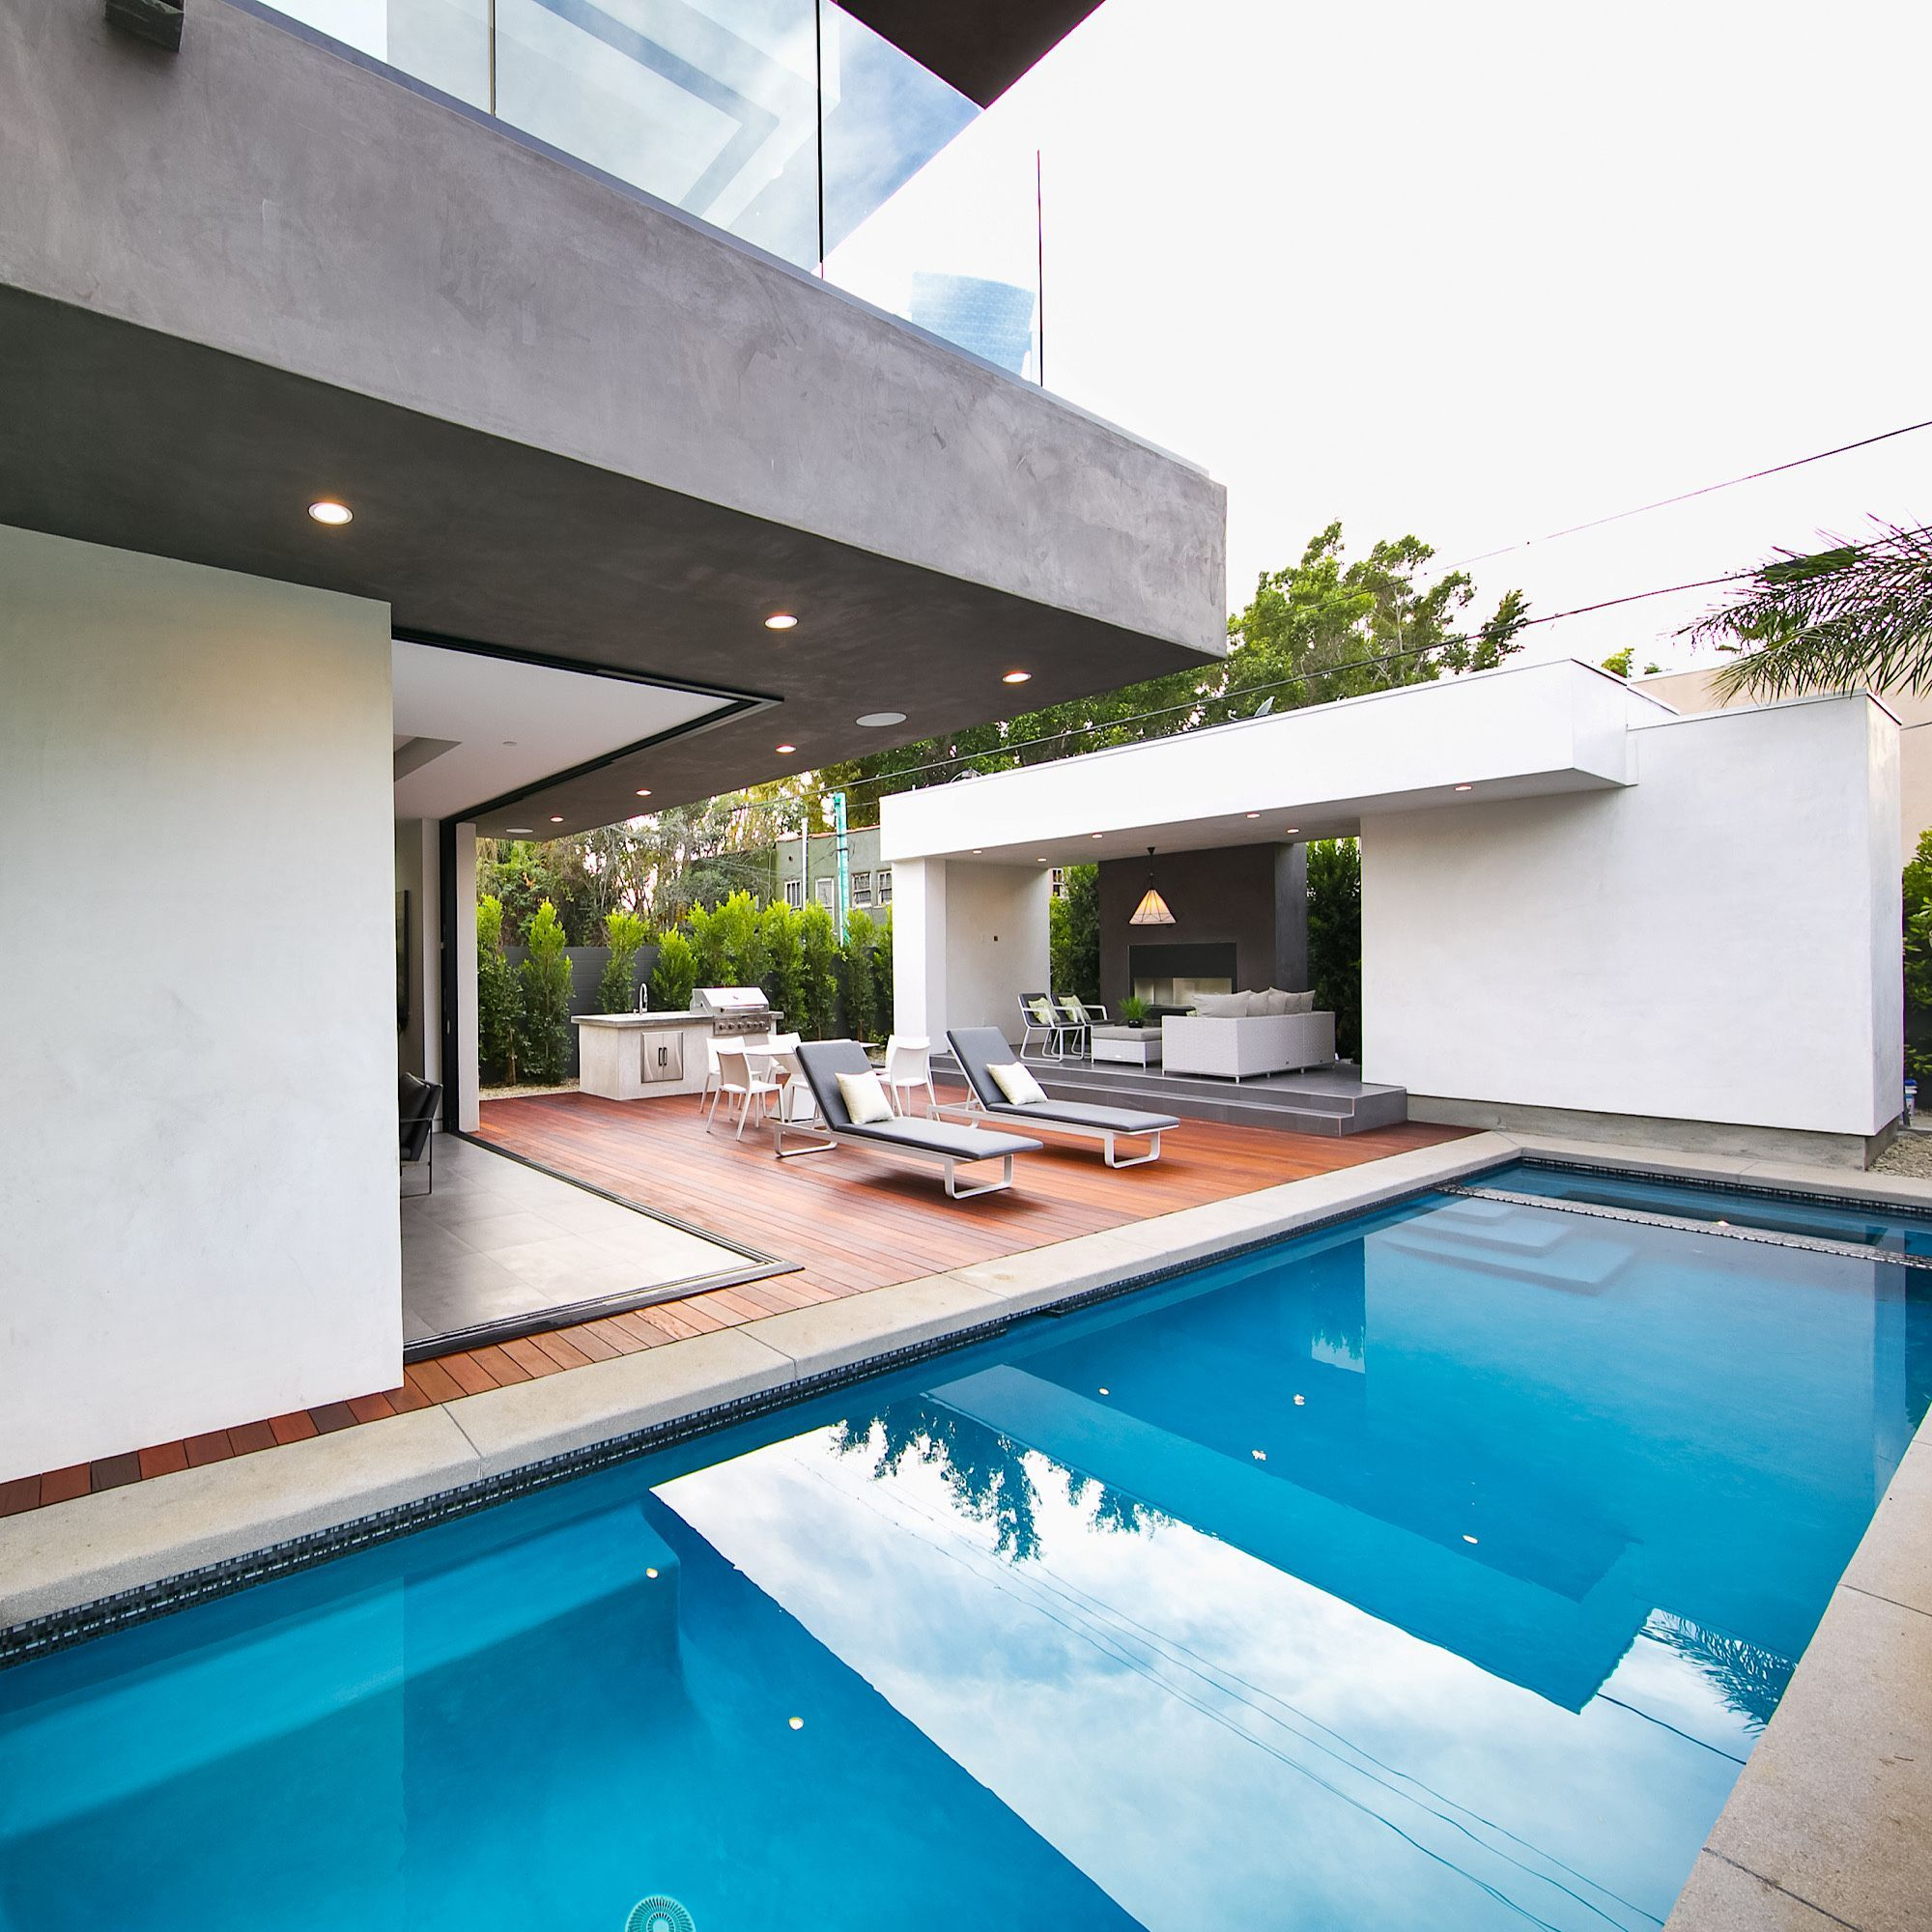 Ready for a dip? #labuildcorp #architecture #homedesign #dreamhome #interiordesign #houseoftheday #generalcontractor #homerenovation #homebuilder #instahome #larealestate #archdaily